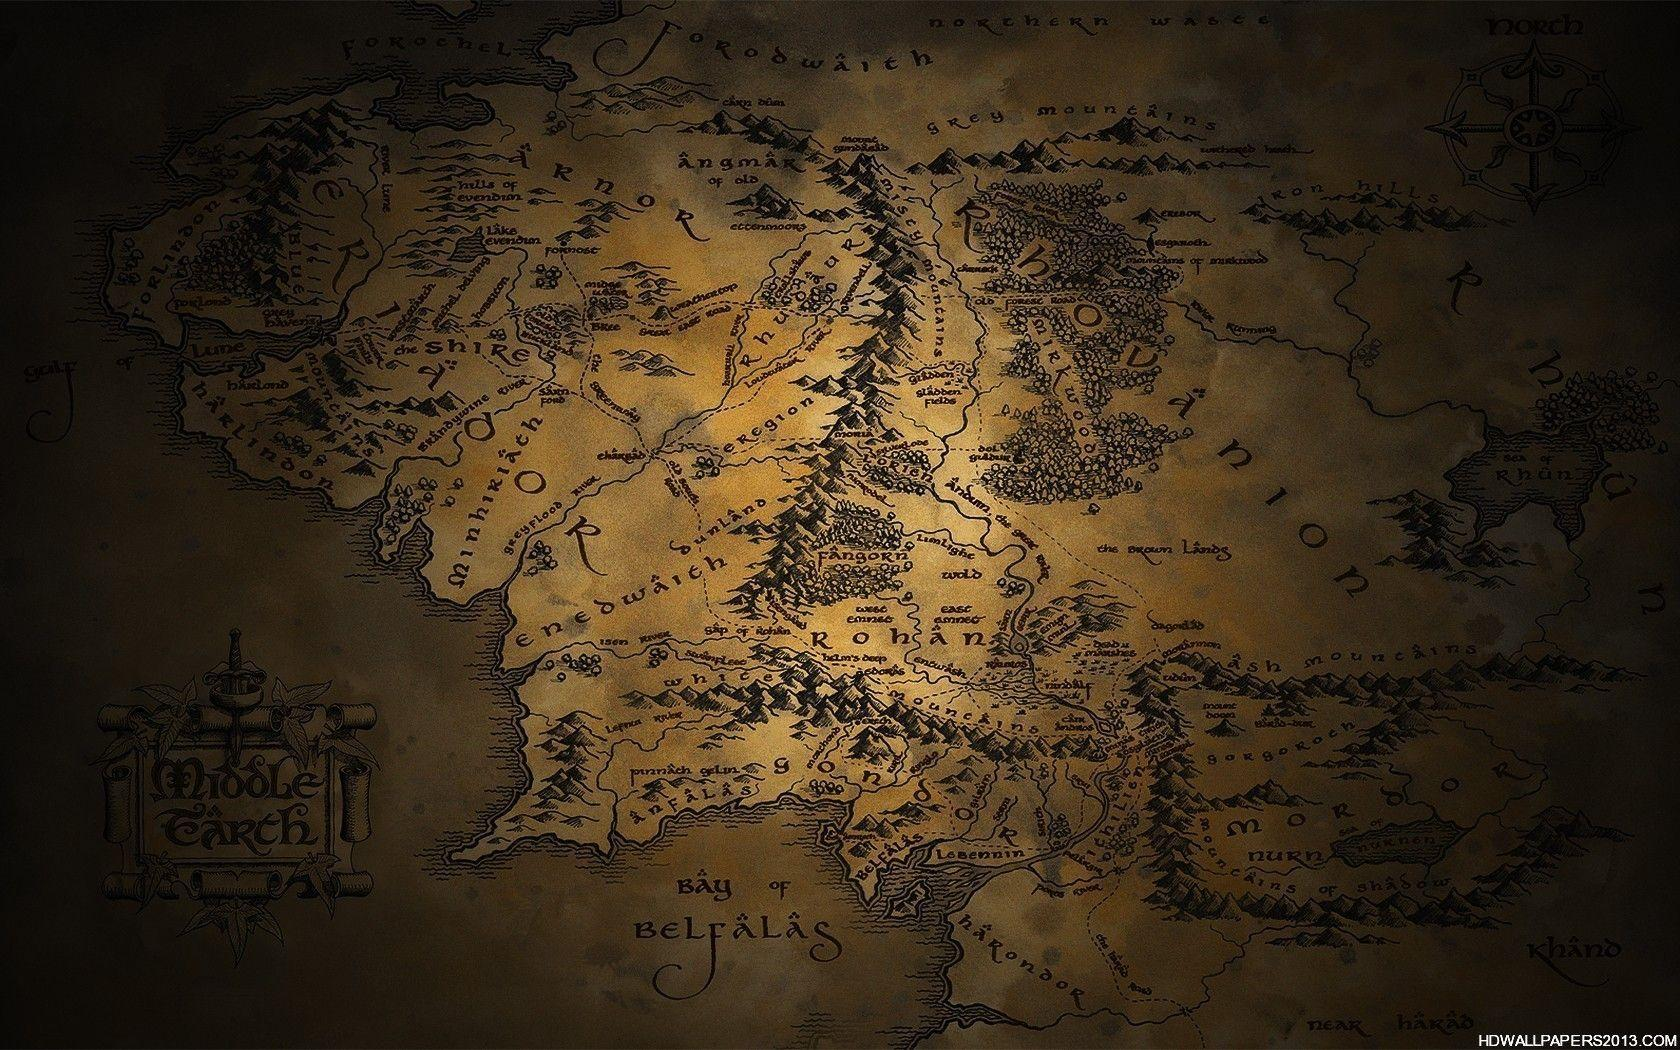 Map Of Middle Earth Wallpapers Wallpaper Cave – Lord of the Rings Map Middle Earth